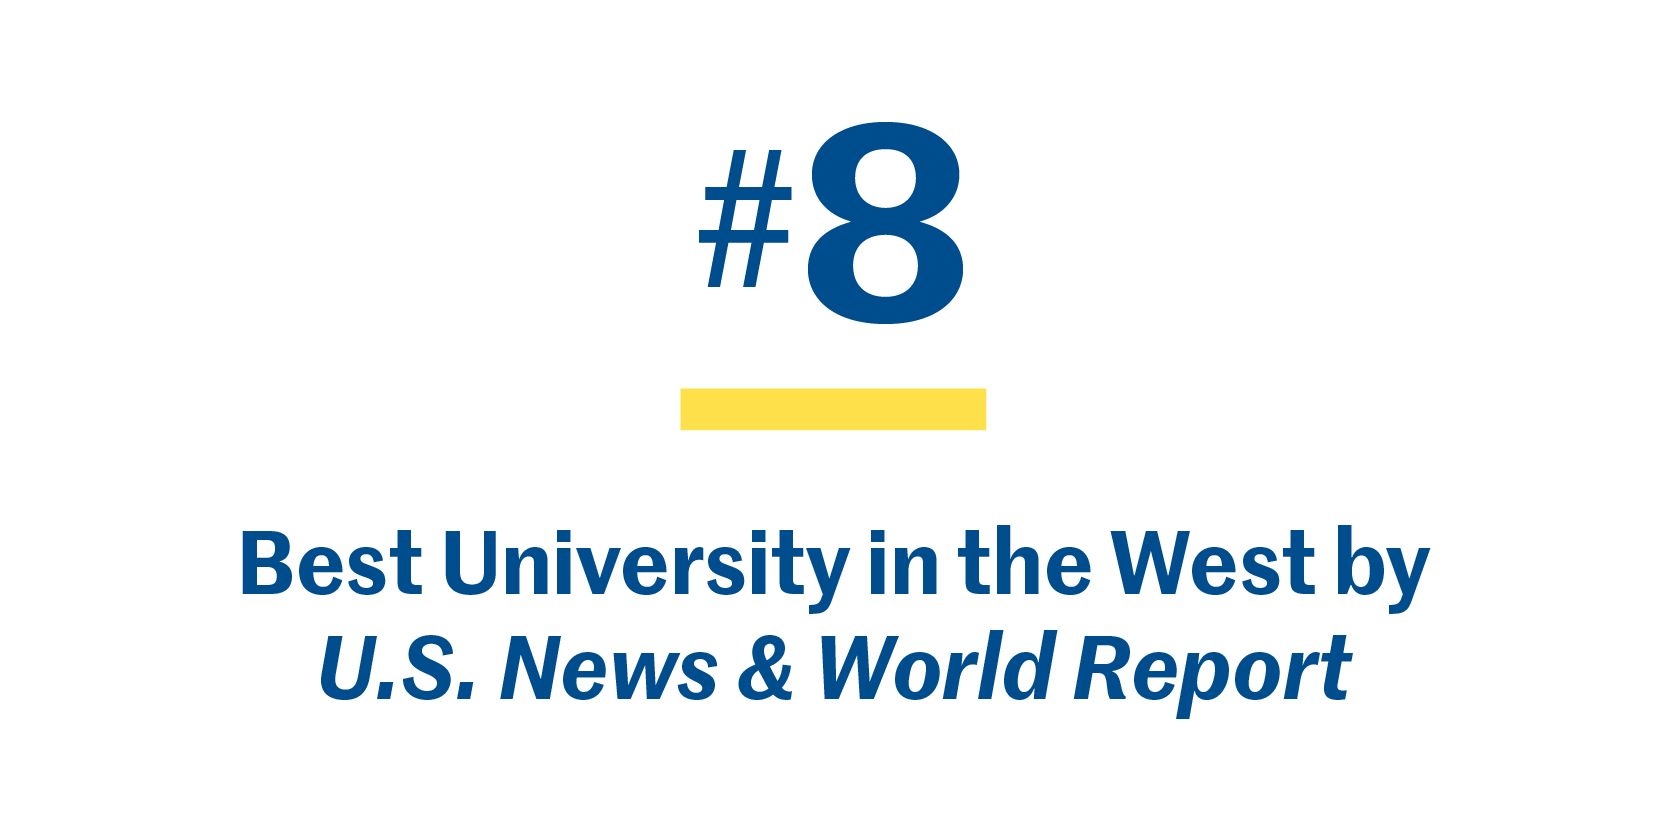 #8 Best University in the West by U.S. News and World Report